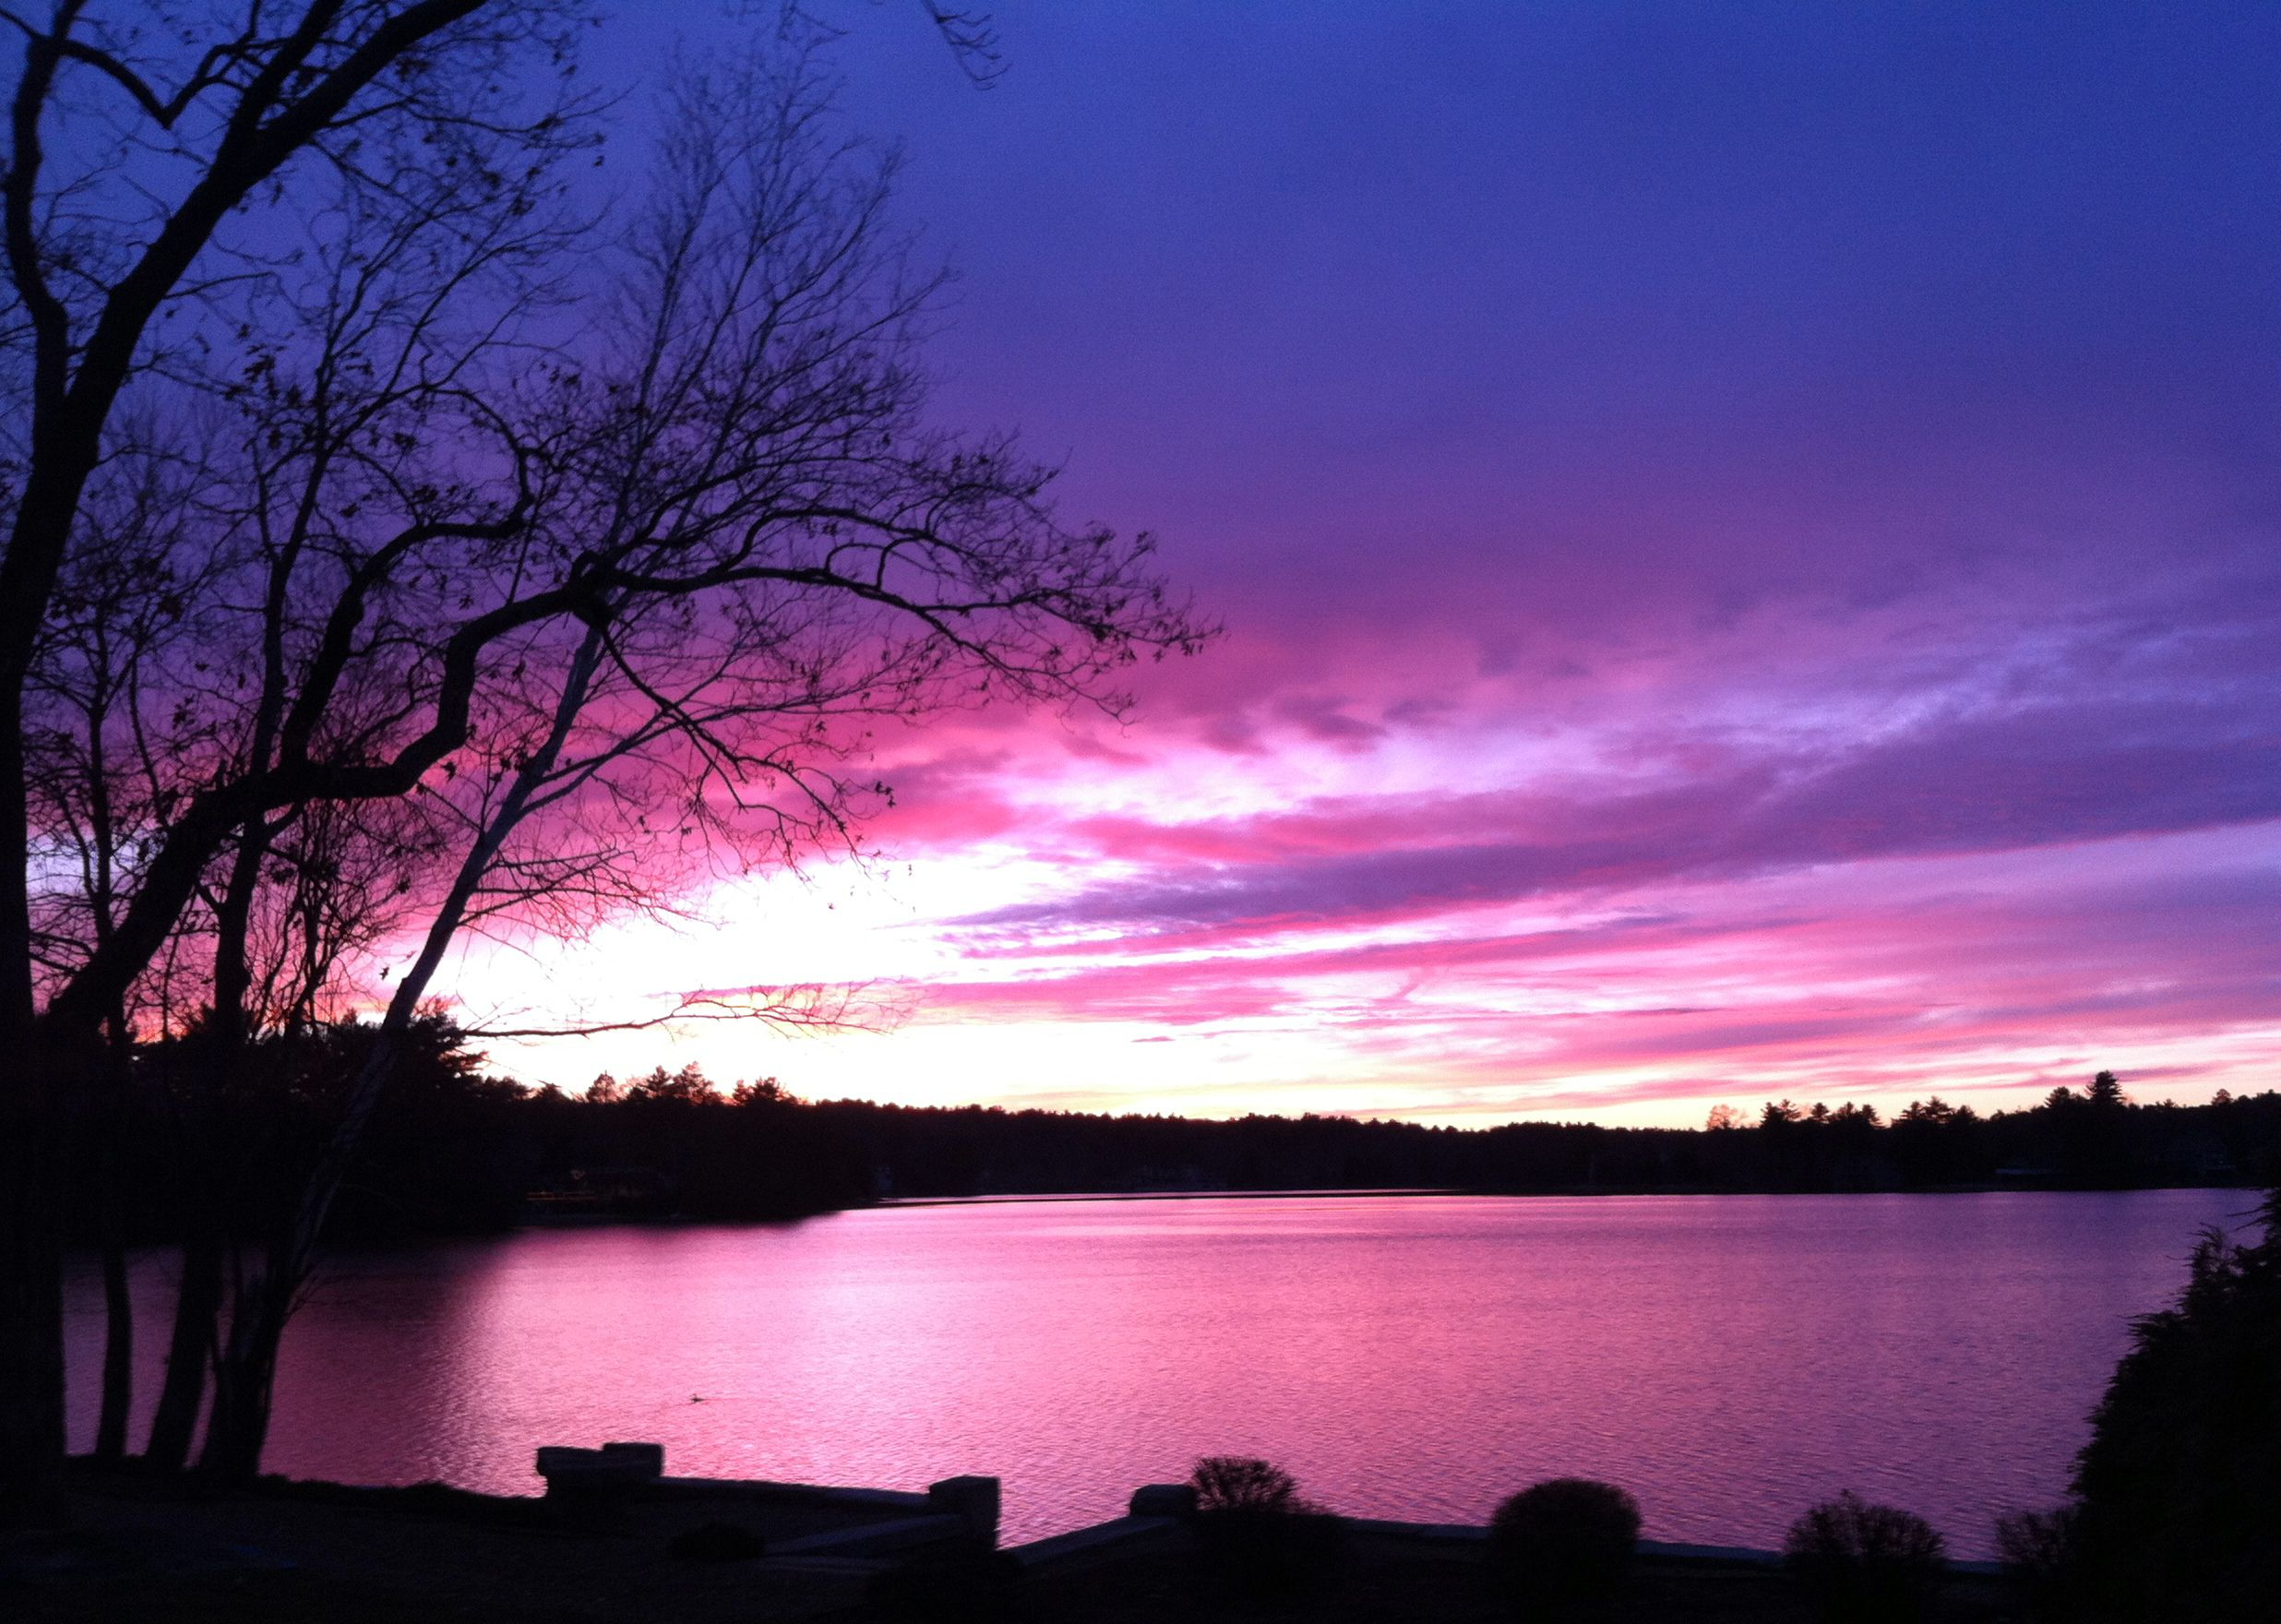 Pink And Purple Sunset With Images Purple Sunset Gods